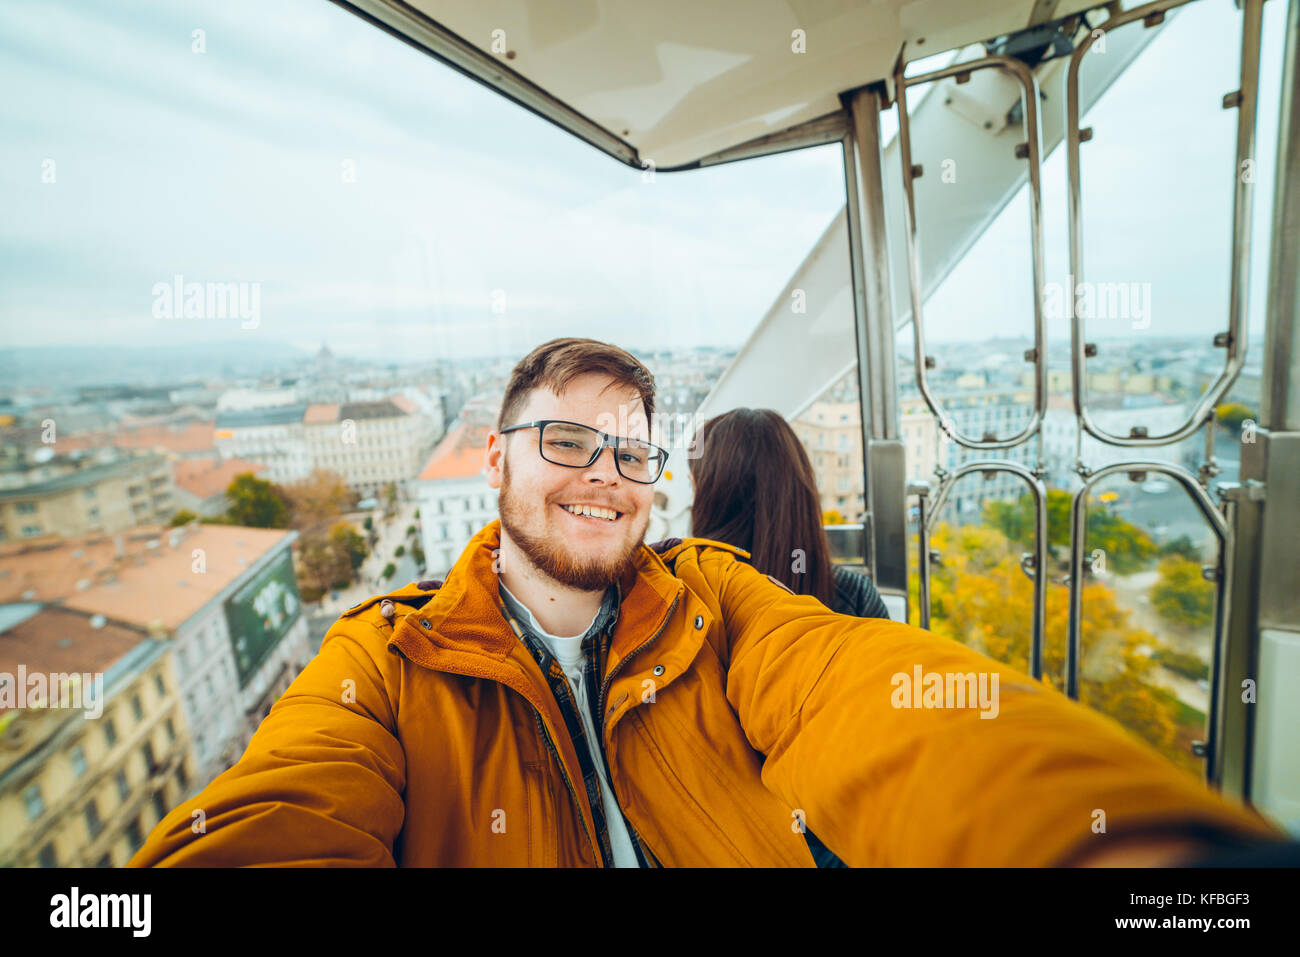 man with woman at ferris wheel taking a selfie - Stock Image